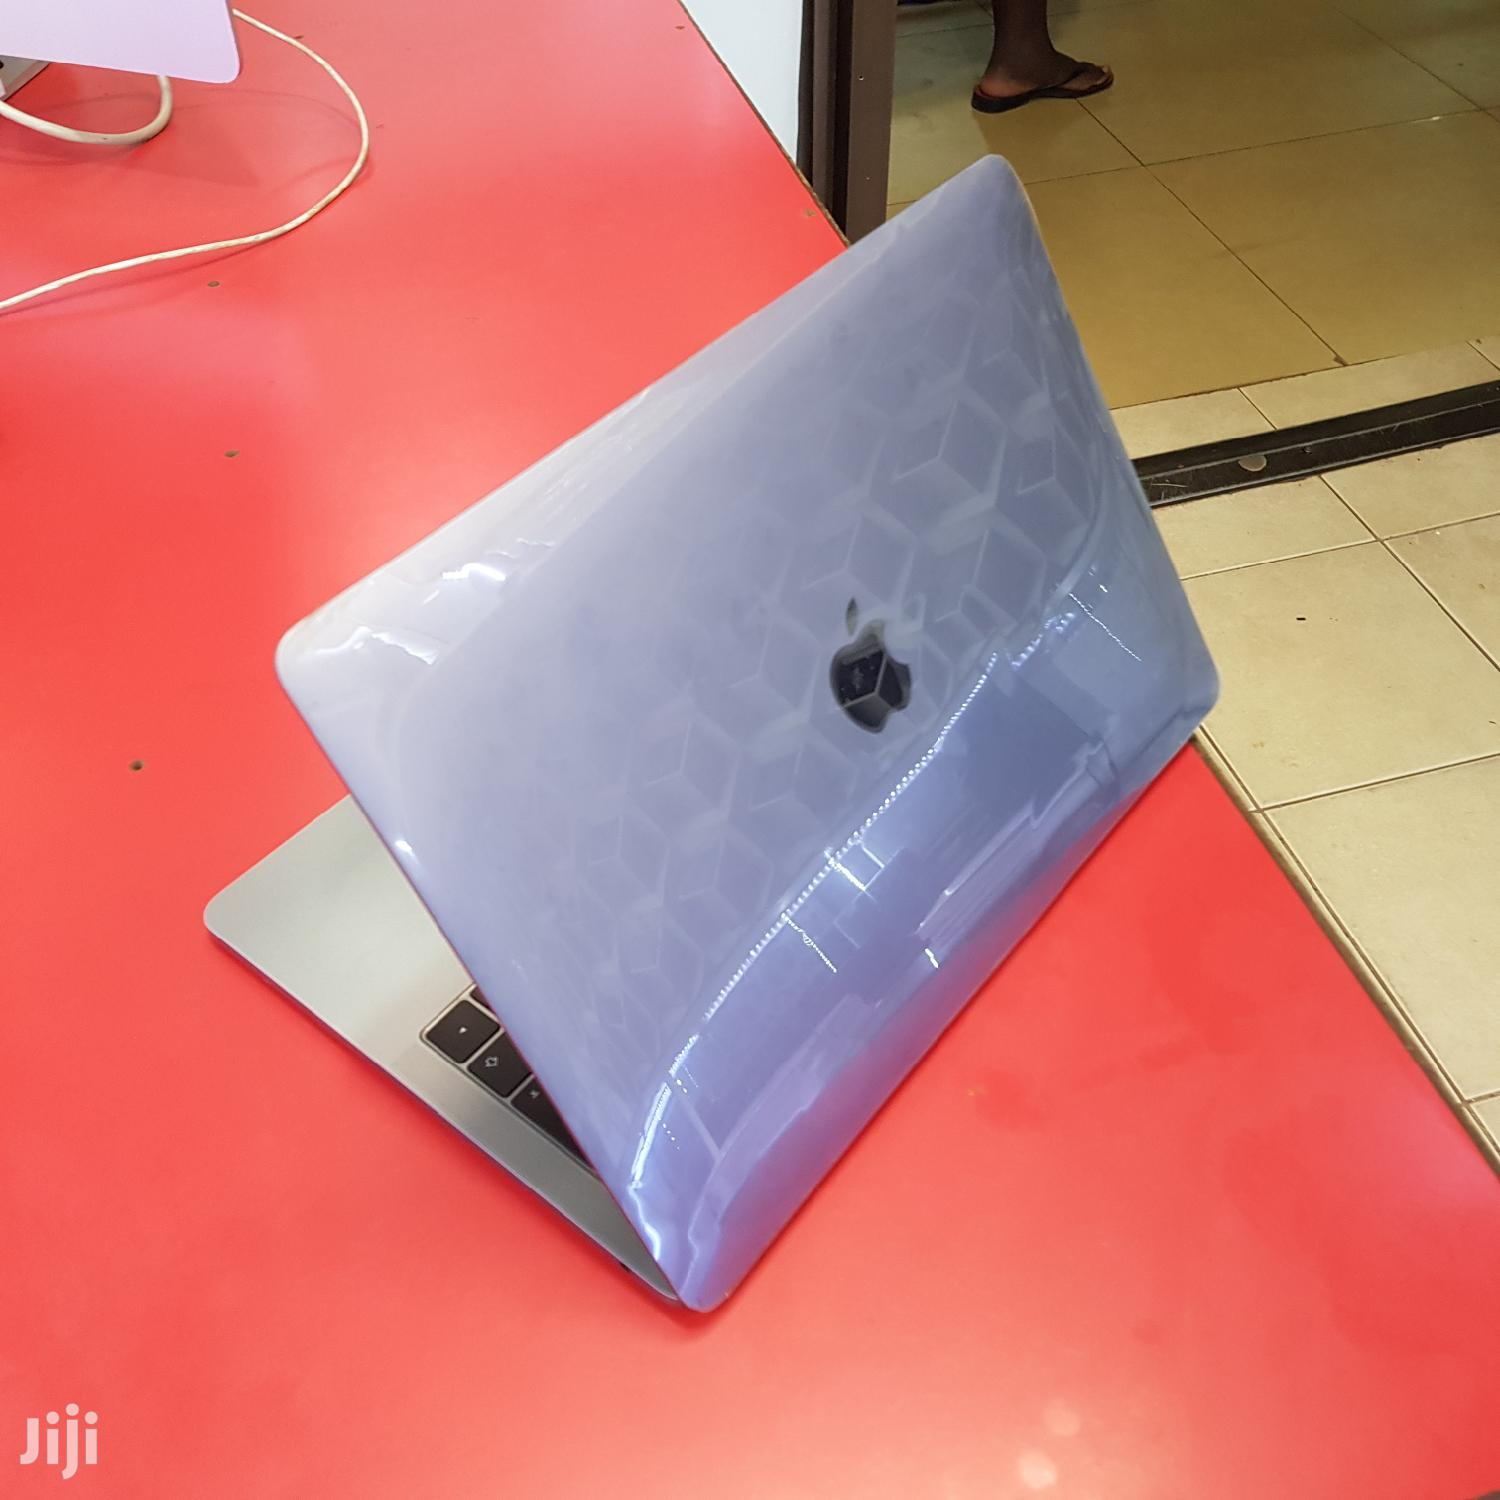 Apple Macbook Pro 13 Inches 128GB SSD Core I5 8GB RAM   Laptops & Computers for sale in Kampala, Central Region, Uganda